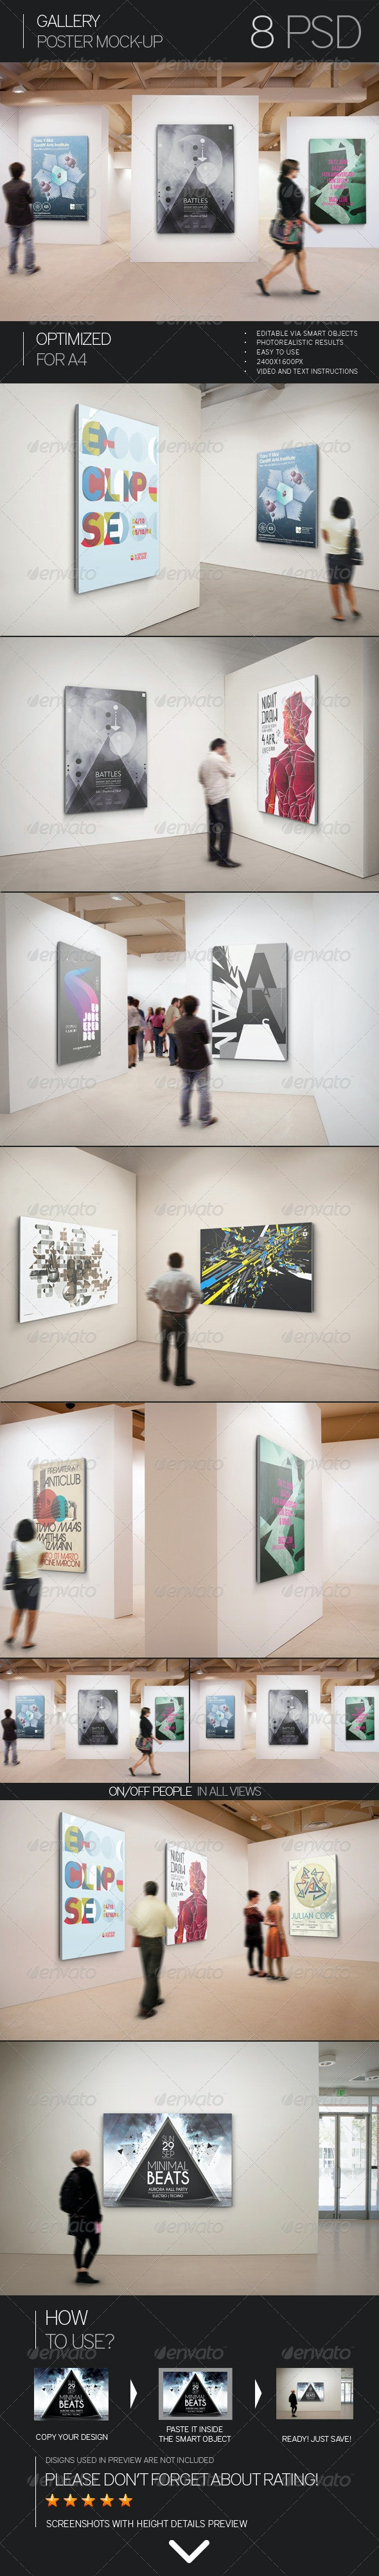 Gallery Poster Mock-Up - Posters Print